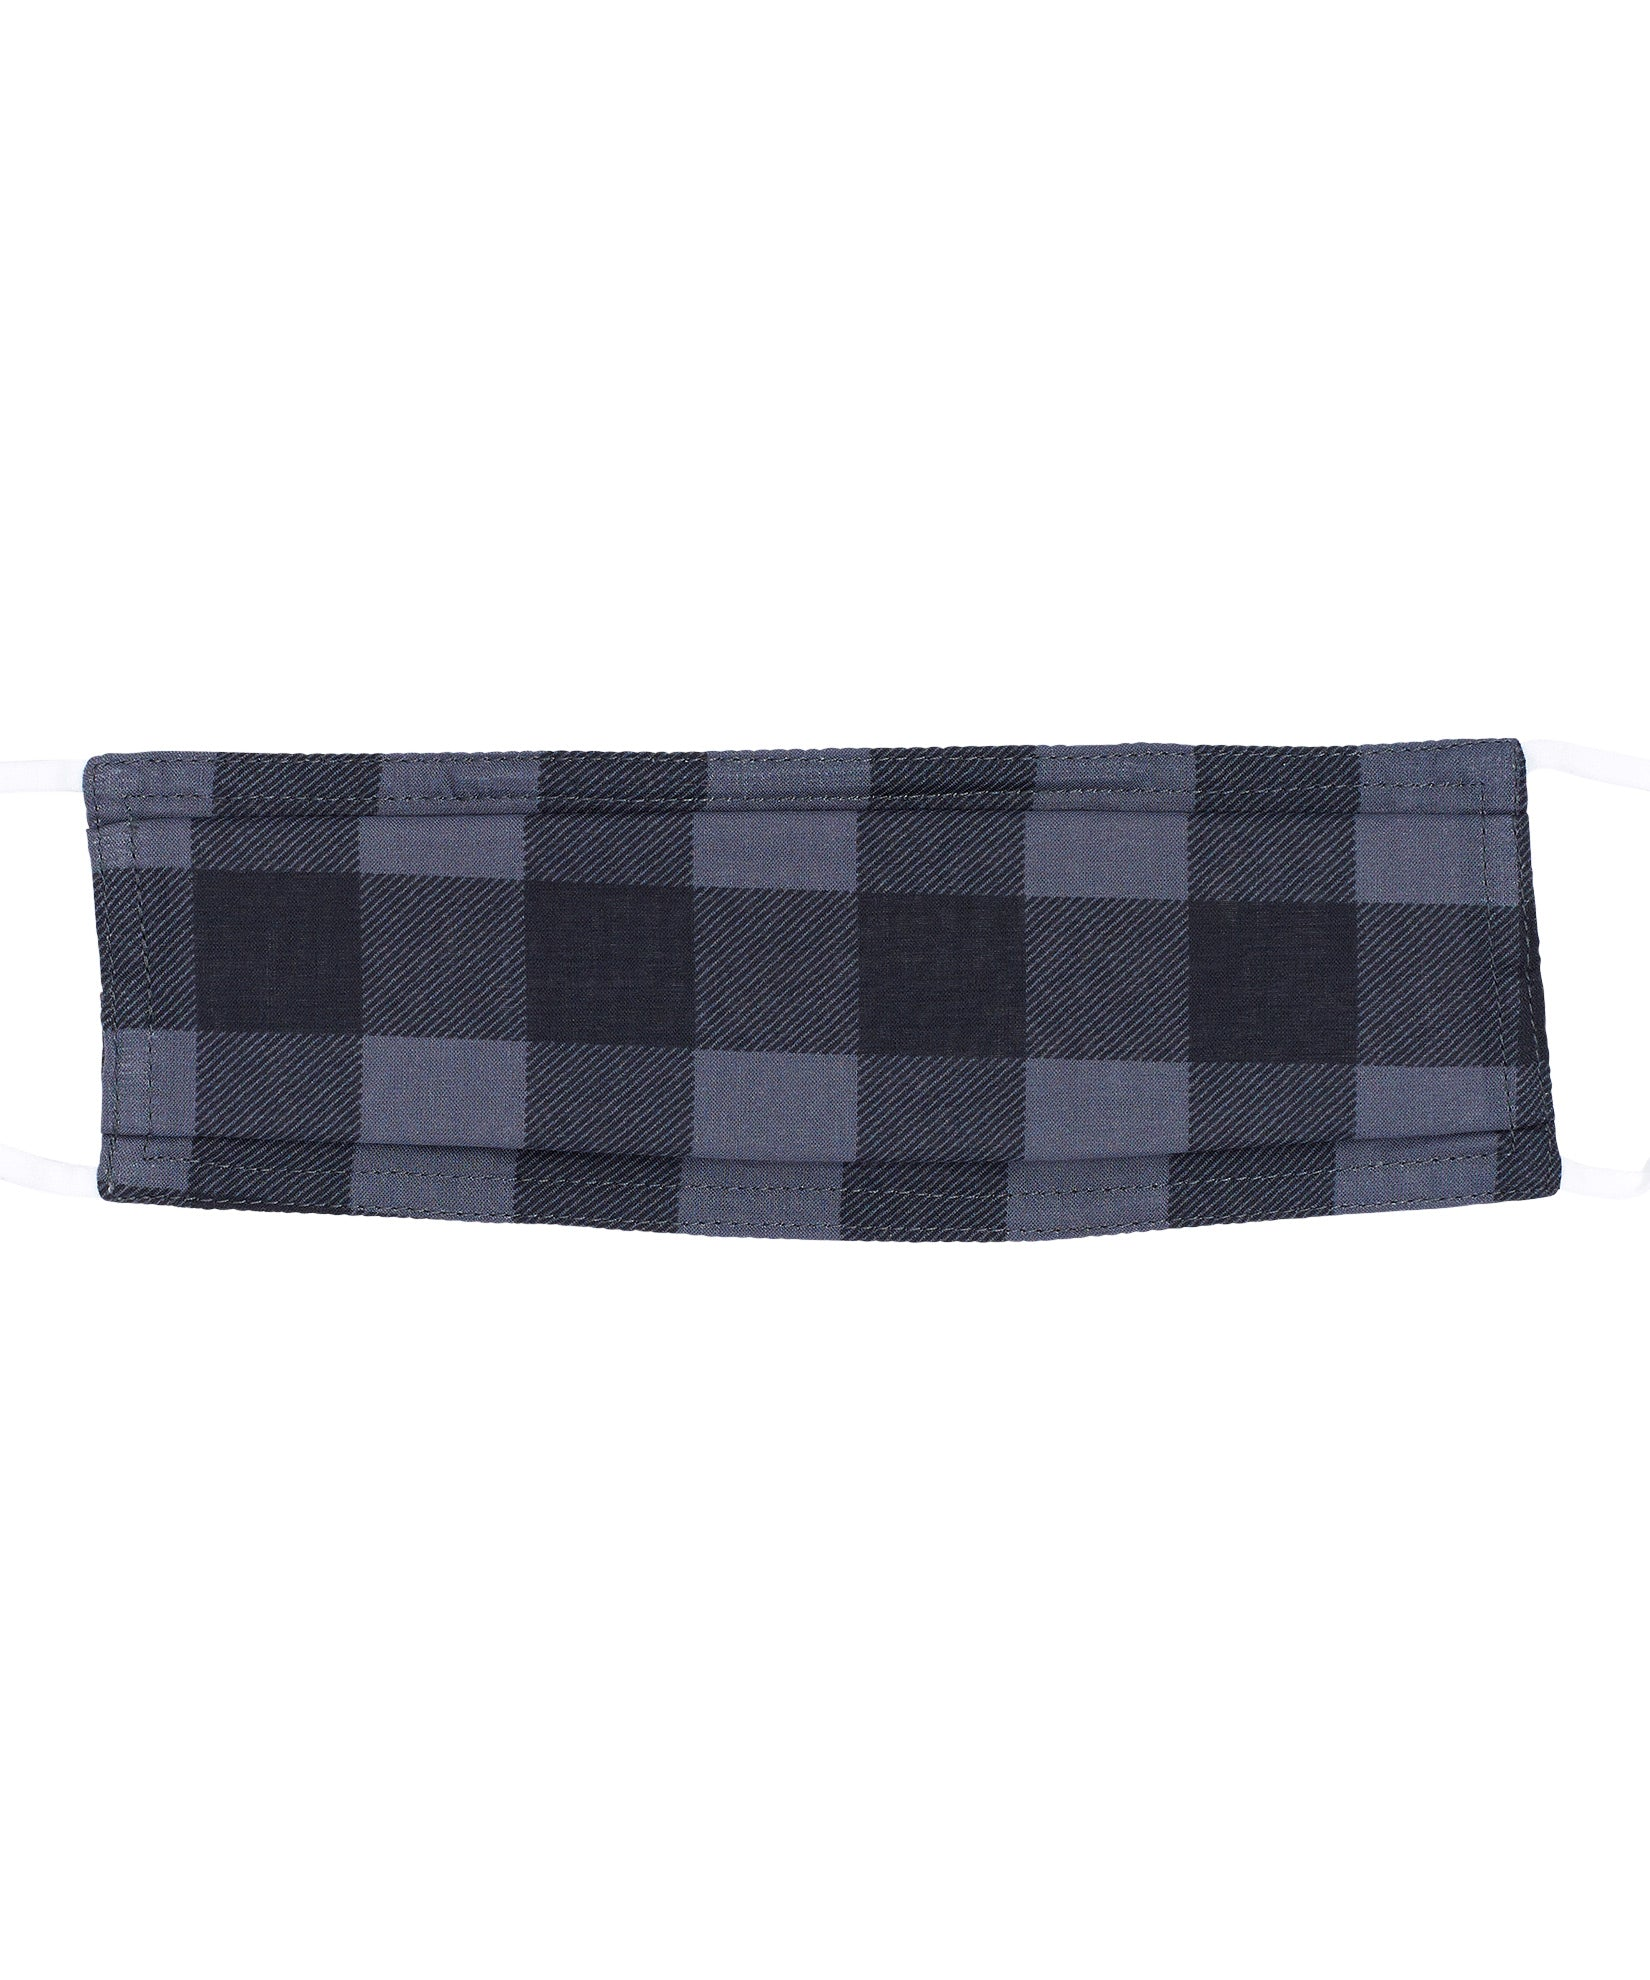 Grey/Black - Buffalo Check Cooling Mask w/Pocket